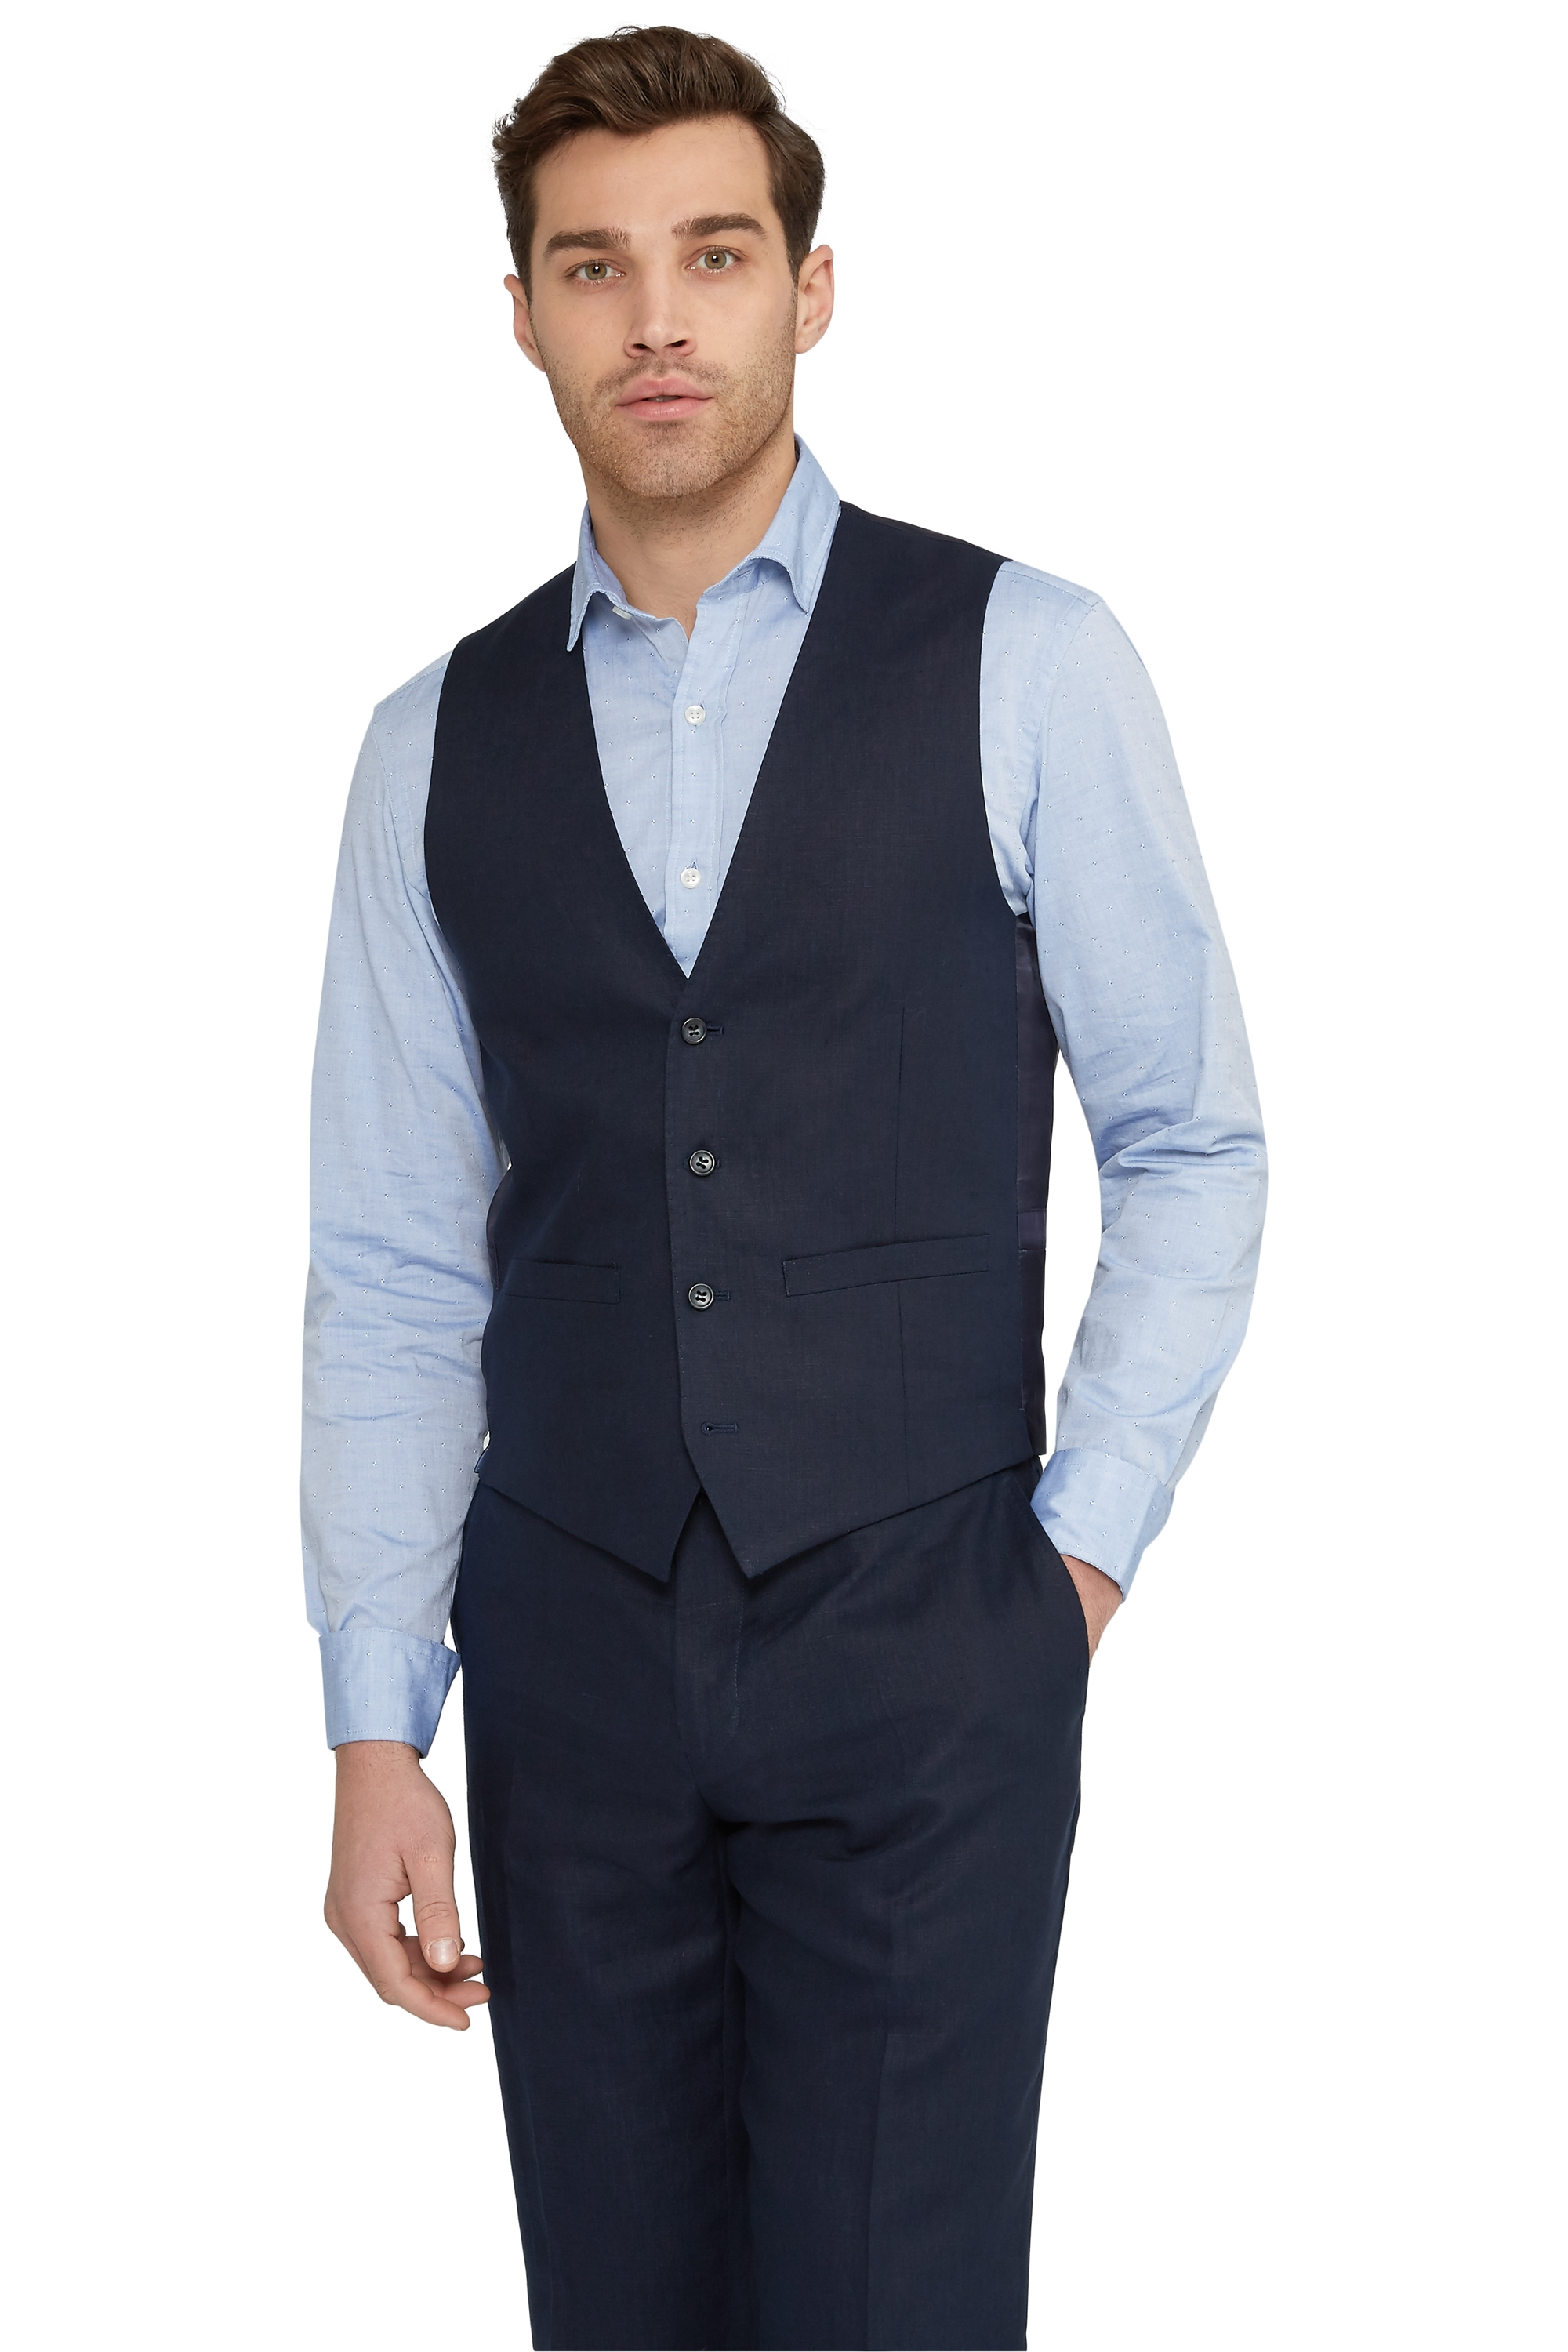 Moss 1851 Mens Navy Blue Suit Waistcoat Tailored Fit Four Button ...